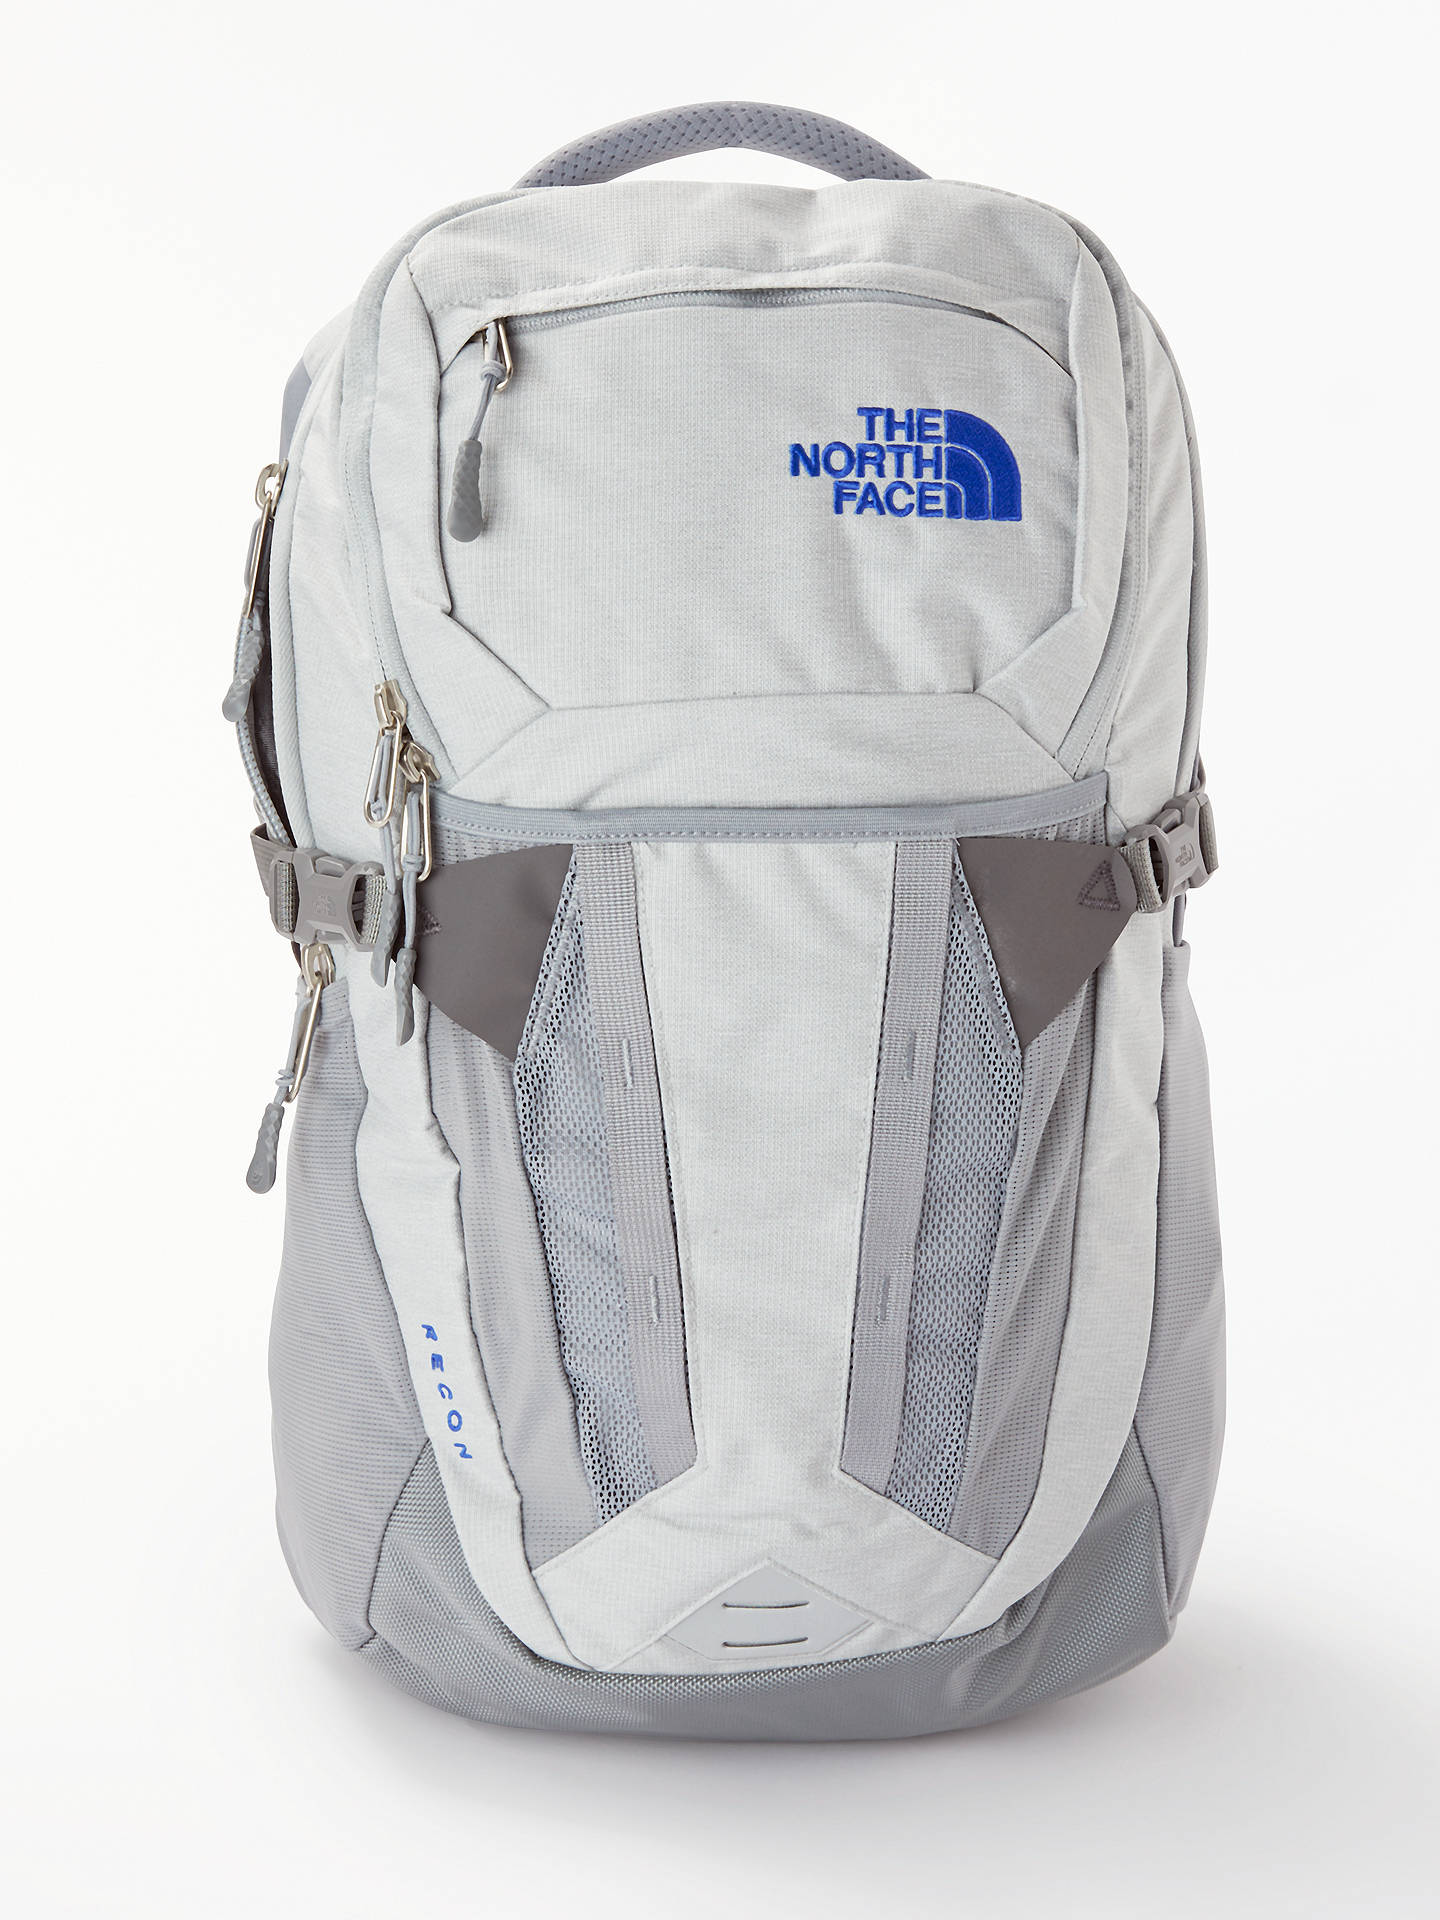 BuyThe North Face Recon Day Backpack, High Rise Grey Online at johnlewis.com